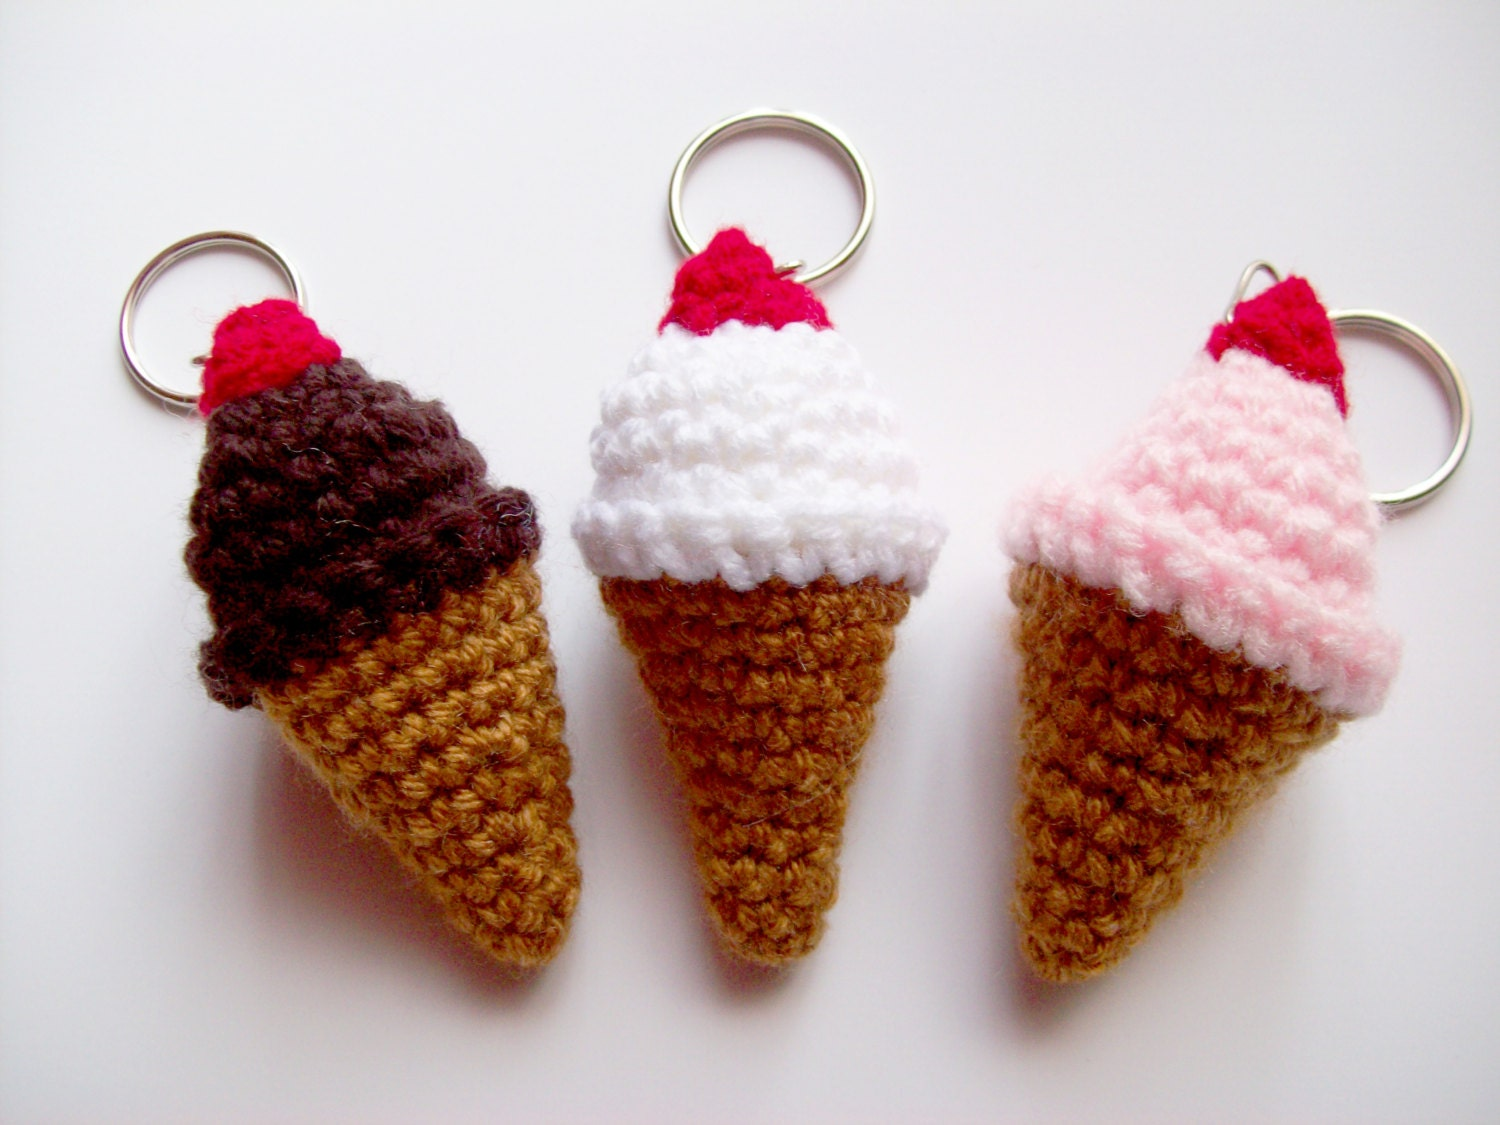 Crochet Patterns Keychain : Ice Cream Keychain, Amigurumi Crochet Key Ring, Kawaii Cute Bag Charm ...